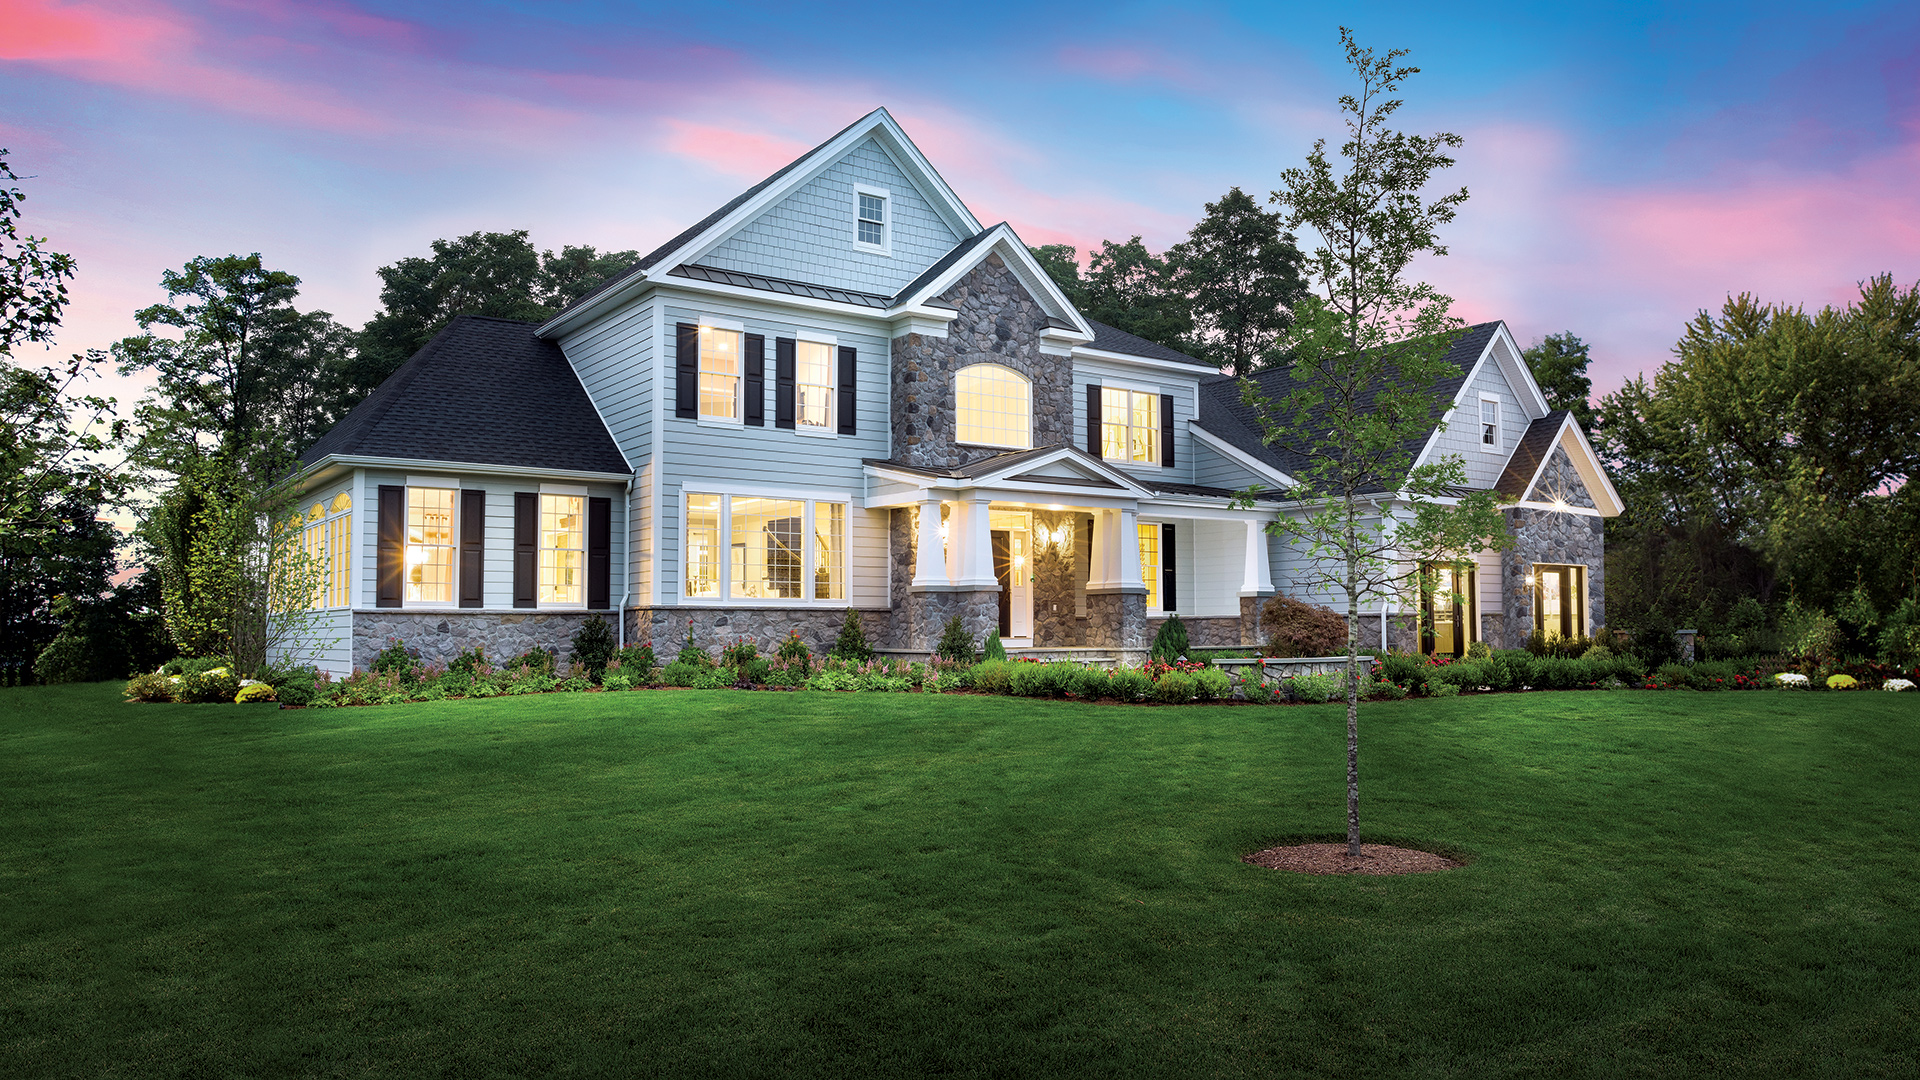 New Luxury Homes For Sale in Upper Saddle River, NJ